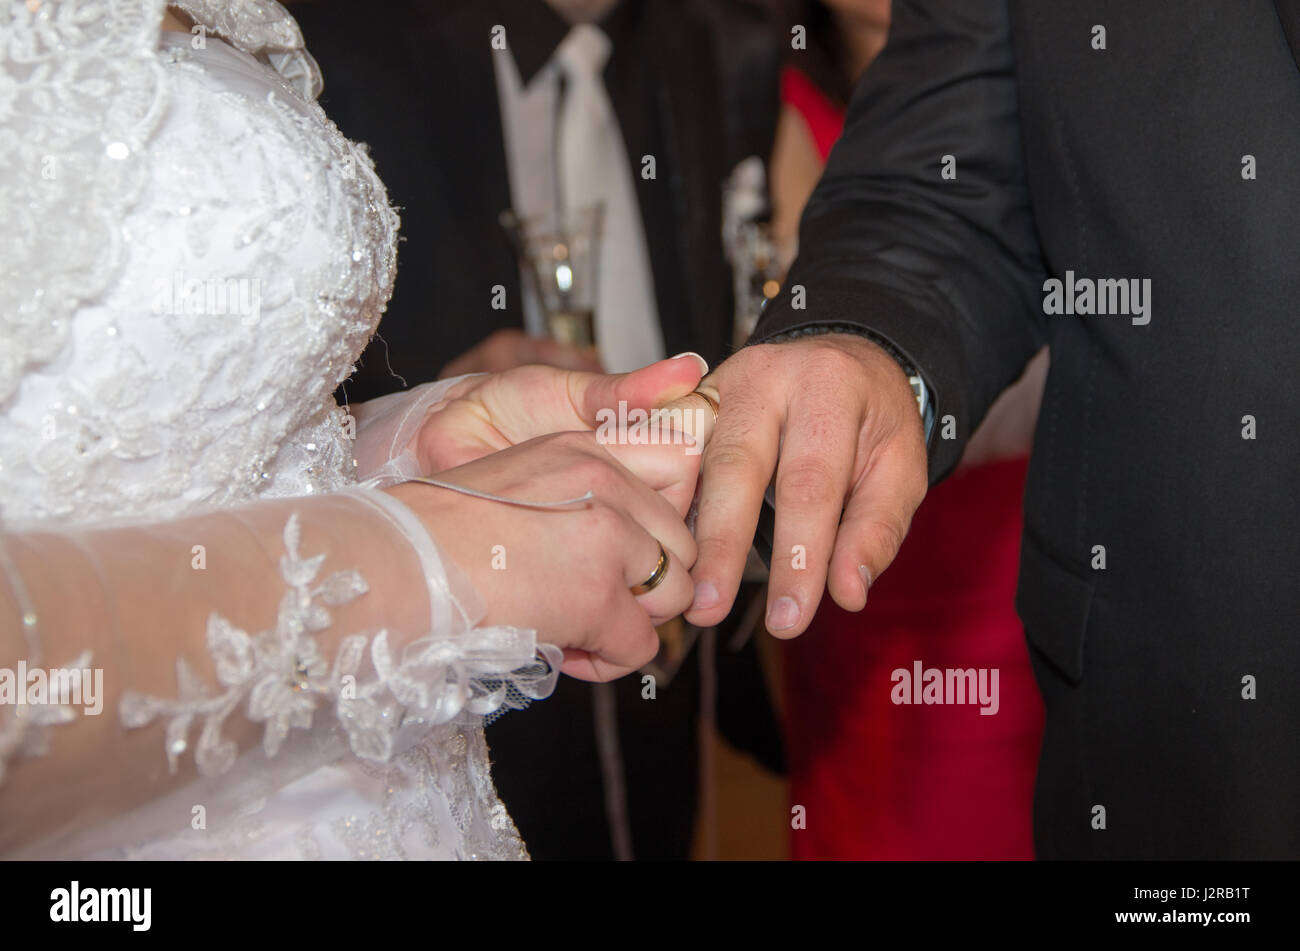 Newlyweds. Bride puts a wedding ring on groom. Hands of newlyweds and wedding rings. Commitment, happiness and love - Stock Image